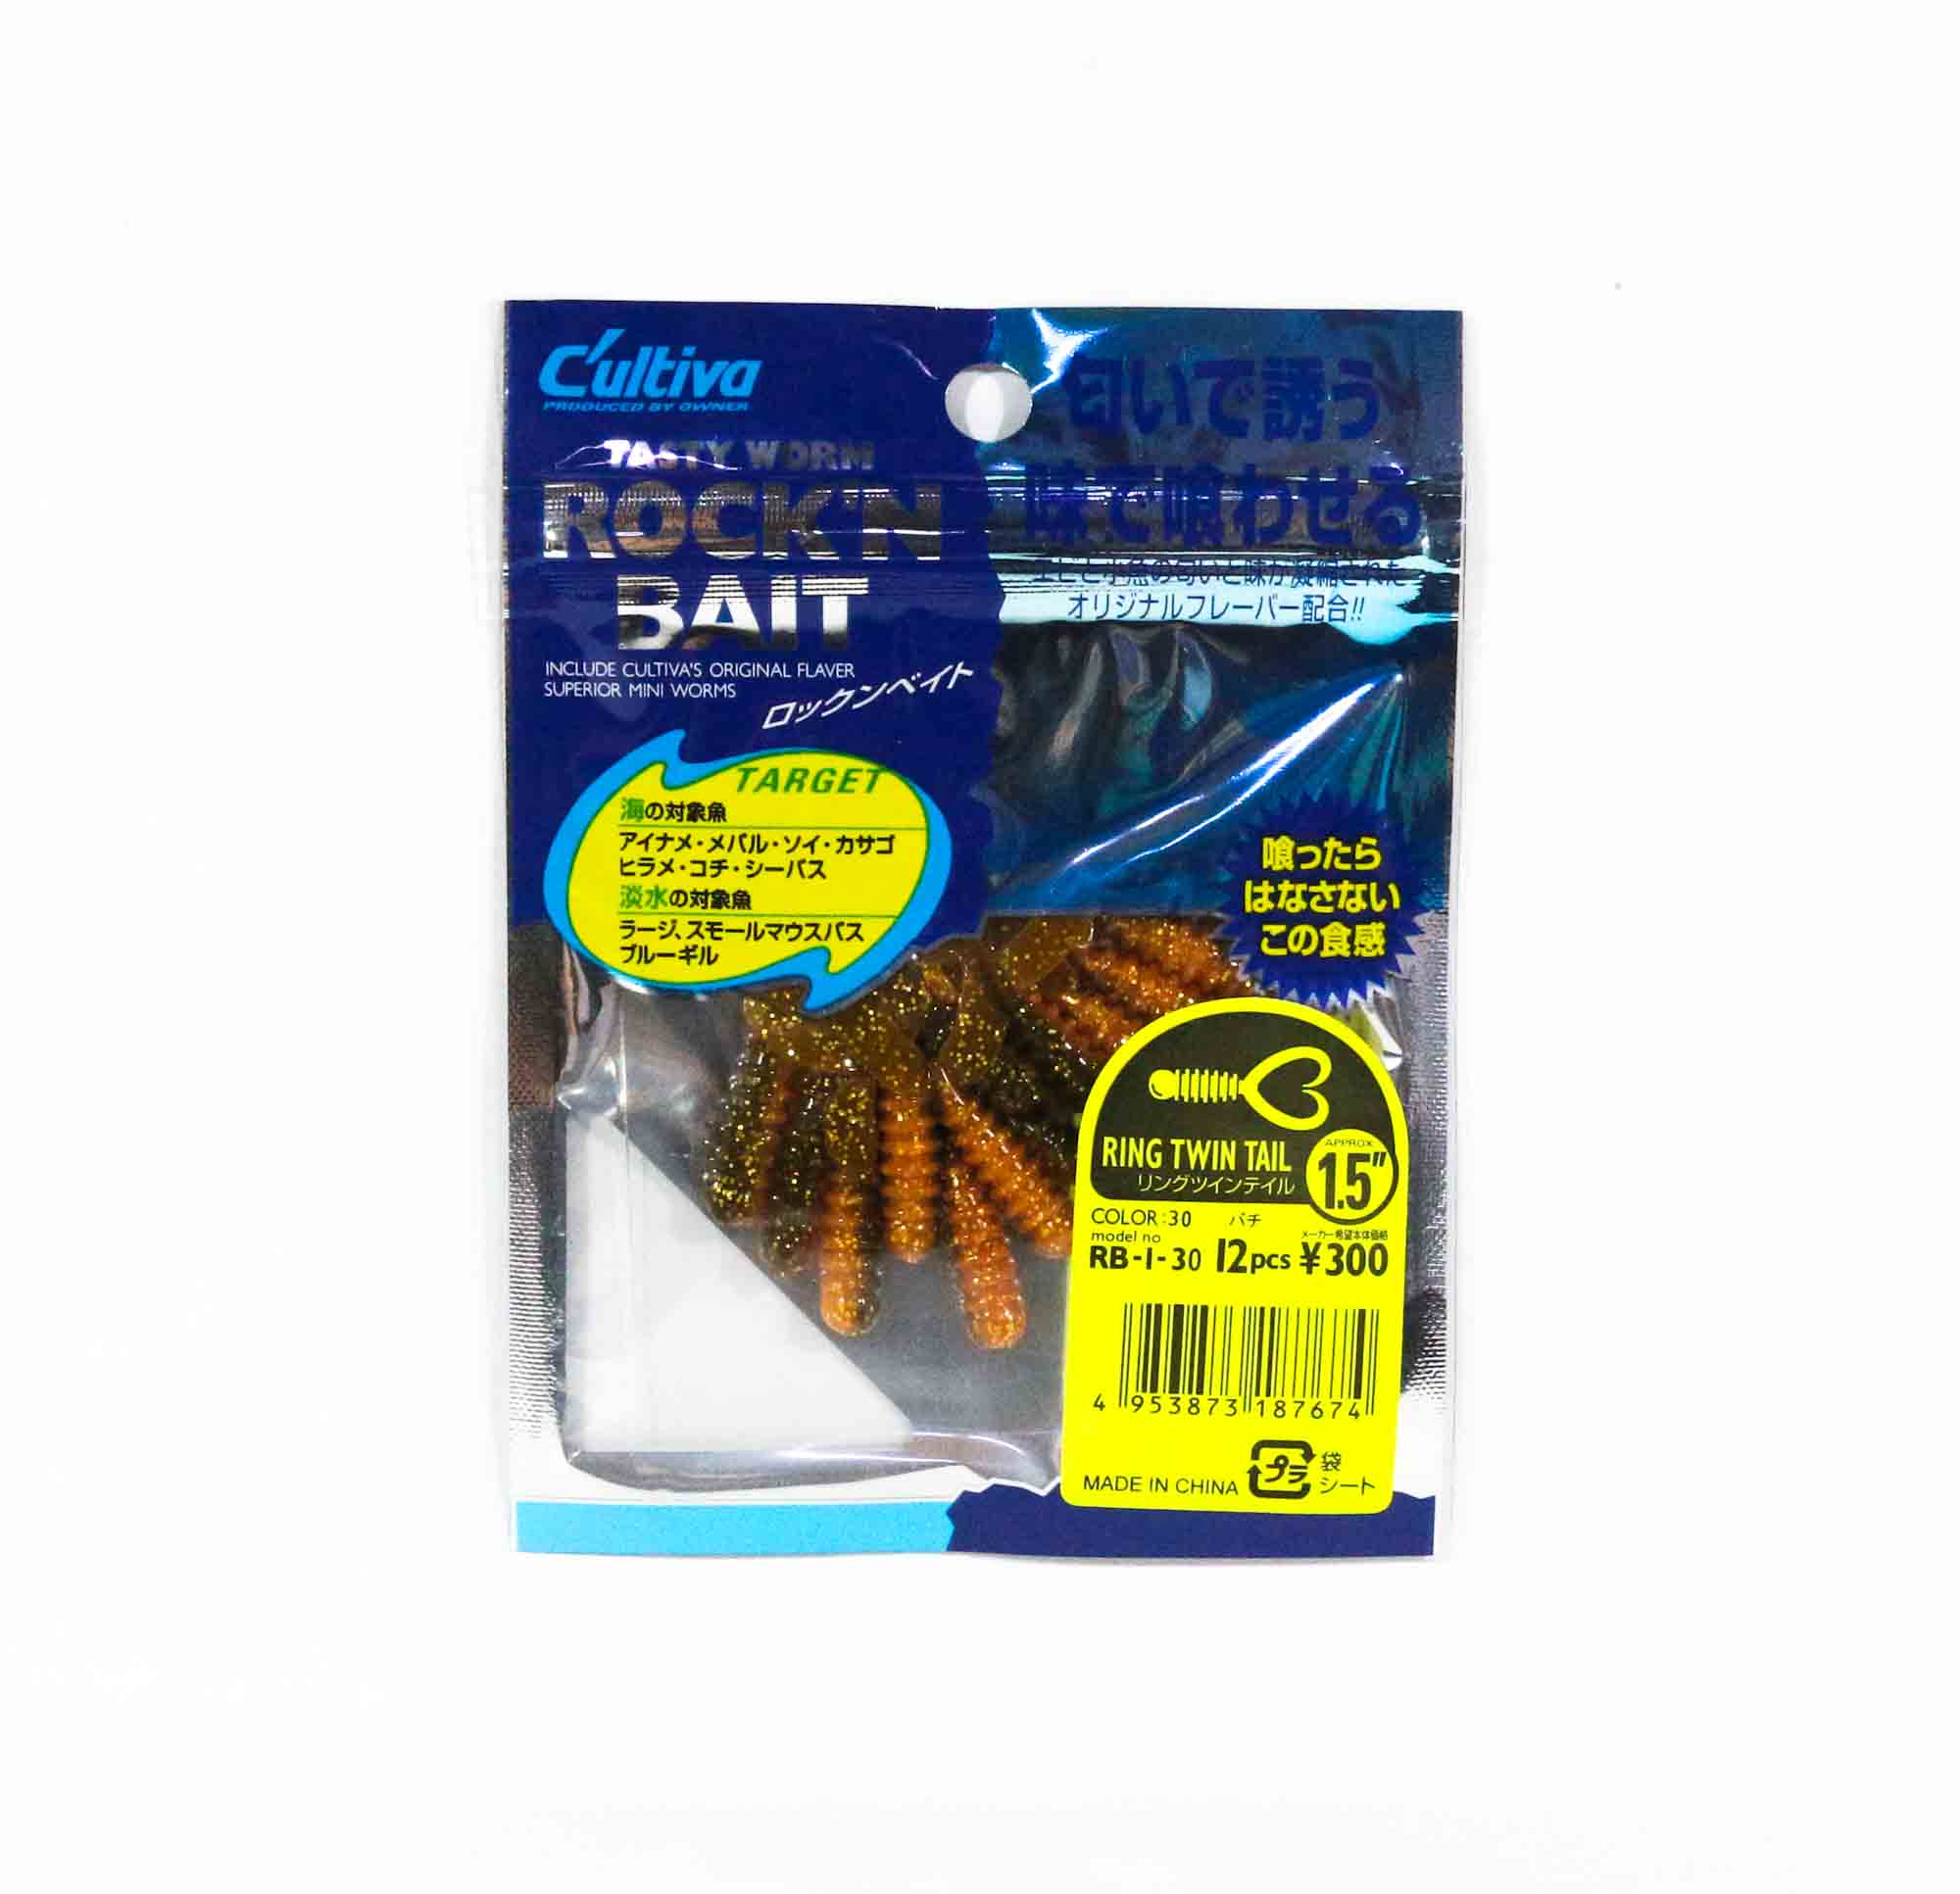 Owner Soft Lure RB-1 Ring Twin Tail 12 Pieces 1.5 Inches 30 (7674)